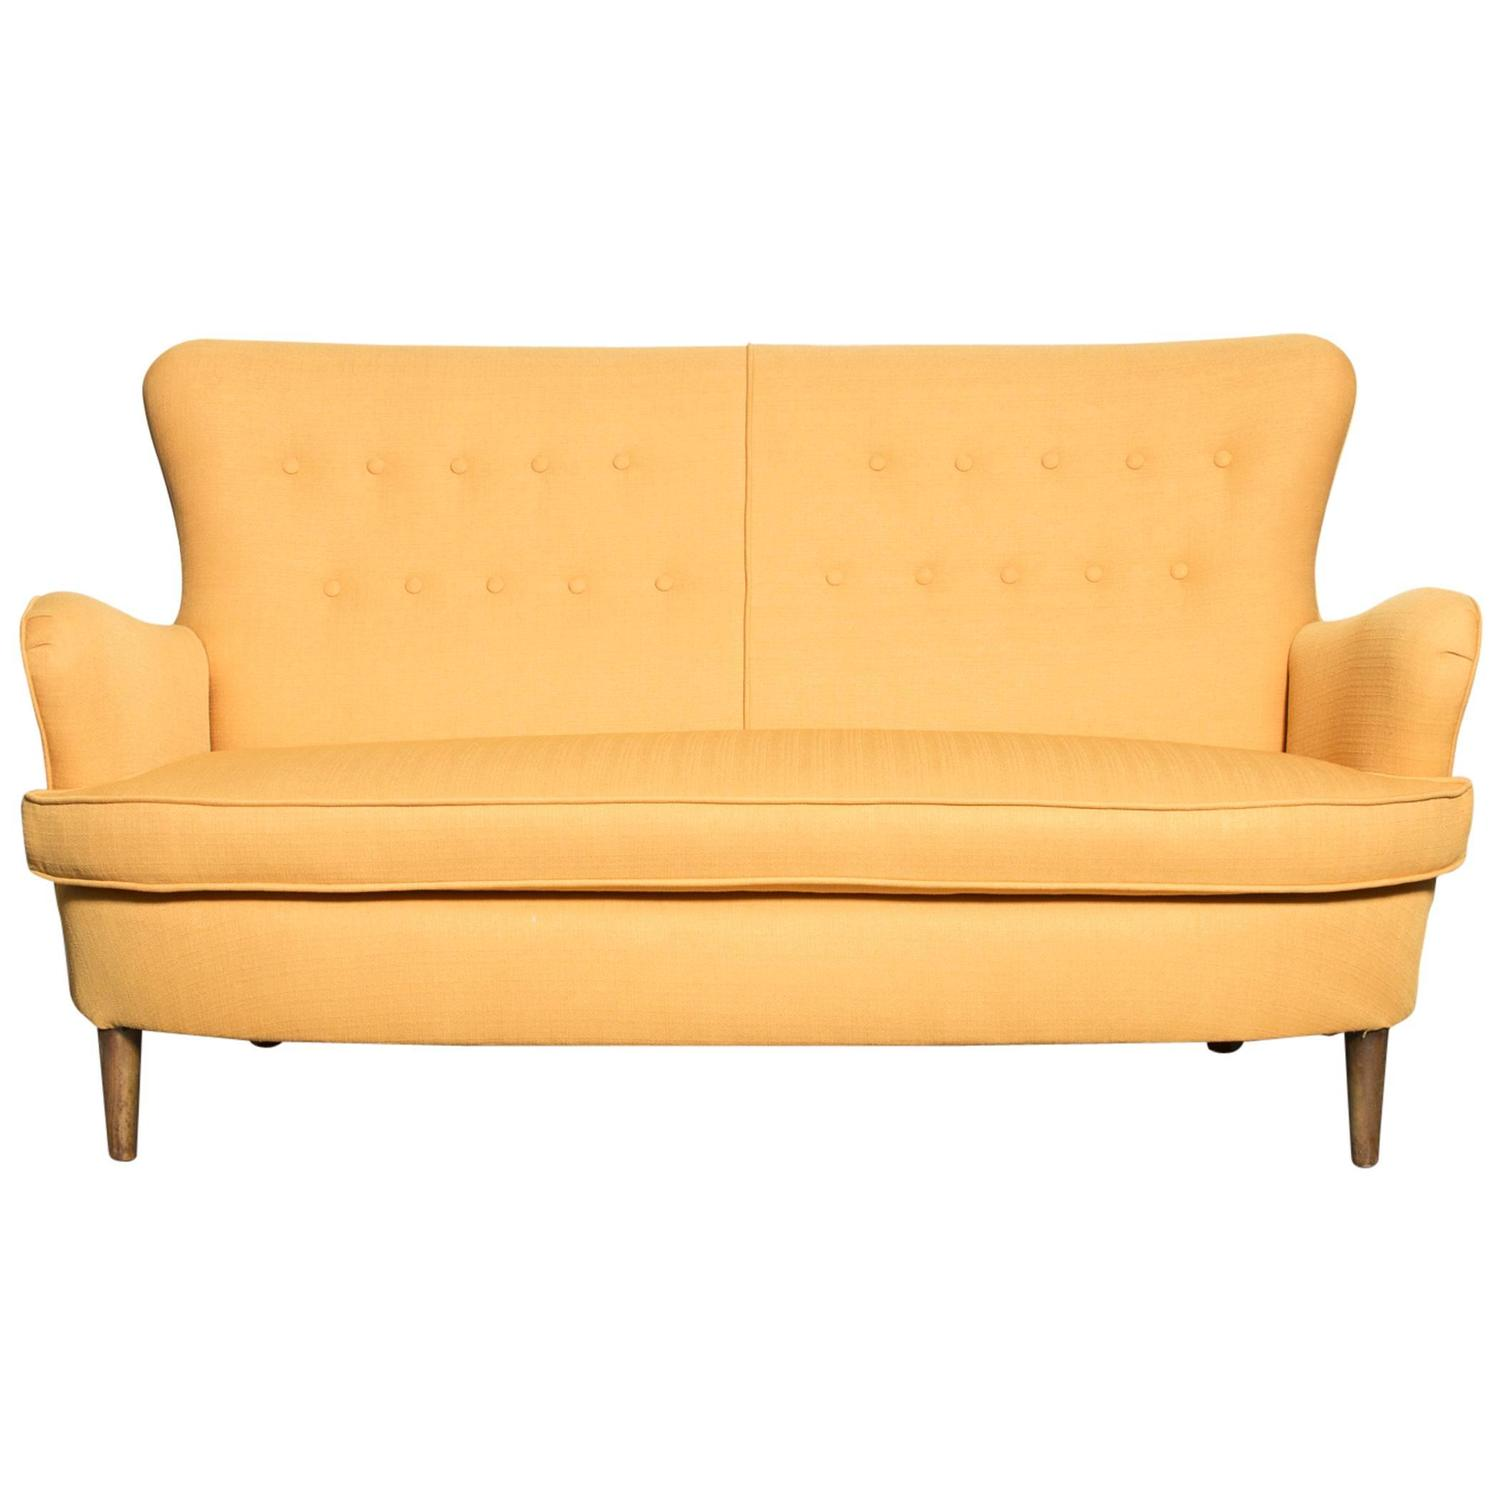 Theo Ruth Style Wingback Loveseat In Sunshine Yellow For